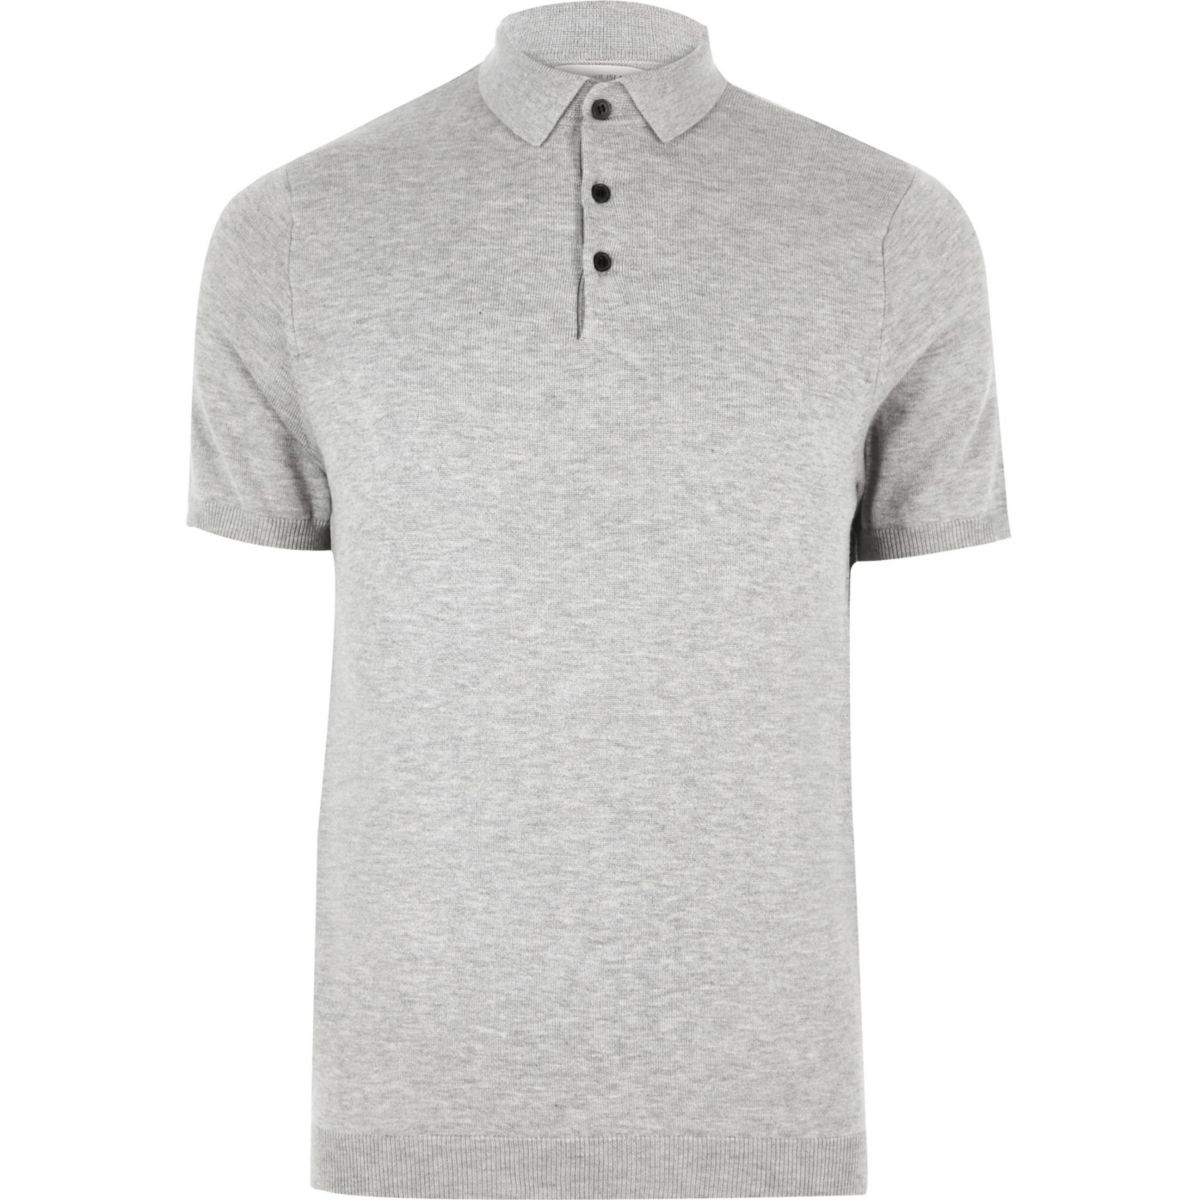 Big And Tall Grey Knit Polo Shirt Polo Shirts Sale Men